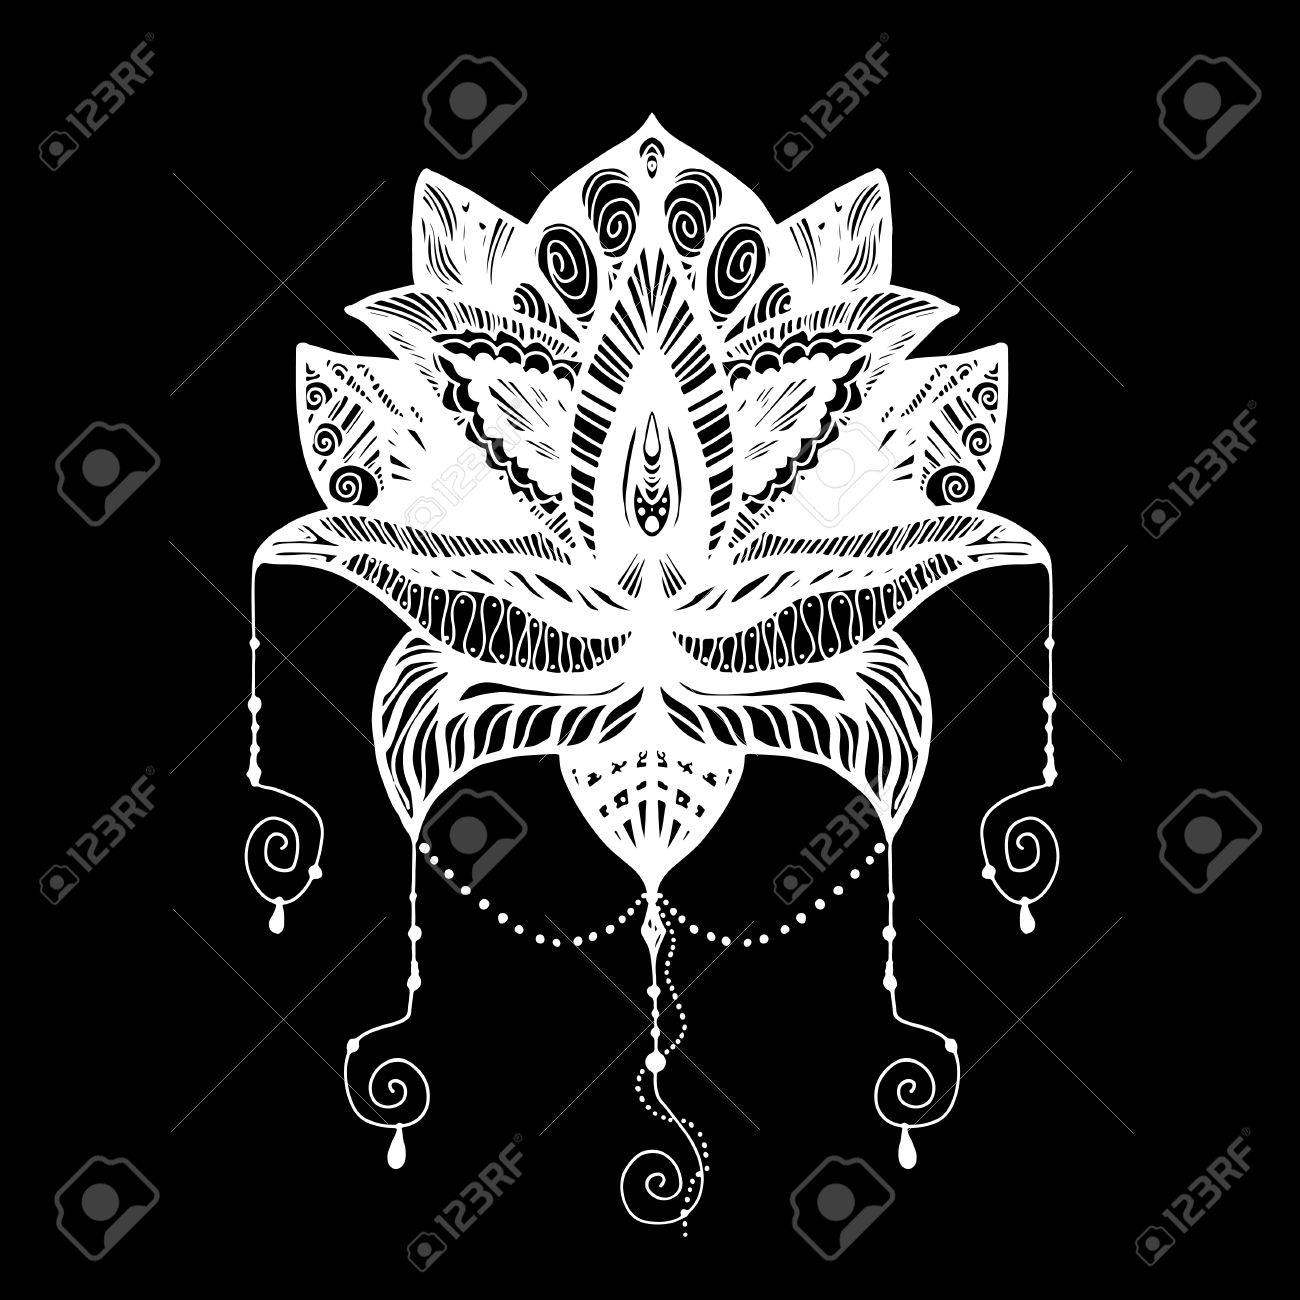 Flower Lotus Magic Symbol For Print Tattoo Coloring Book Fabric Royalty Free Cliparts Vectors And Stock Illustration Image 65552311